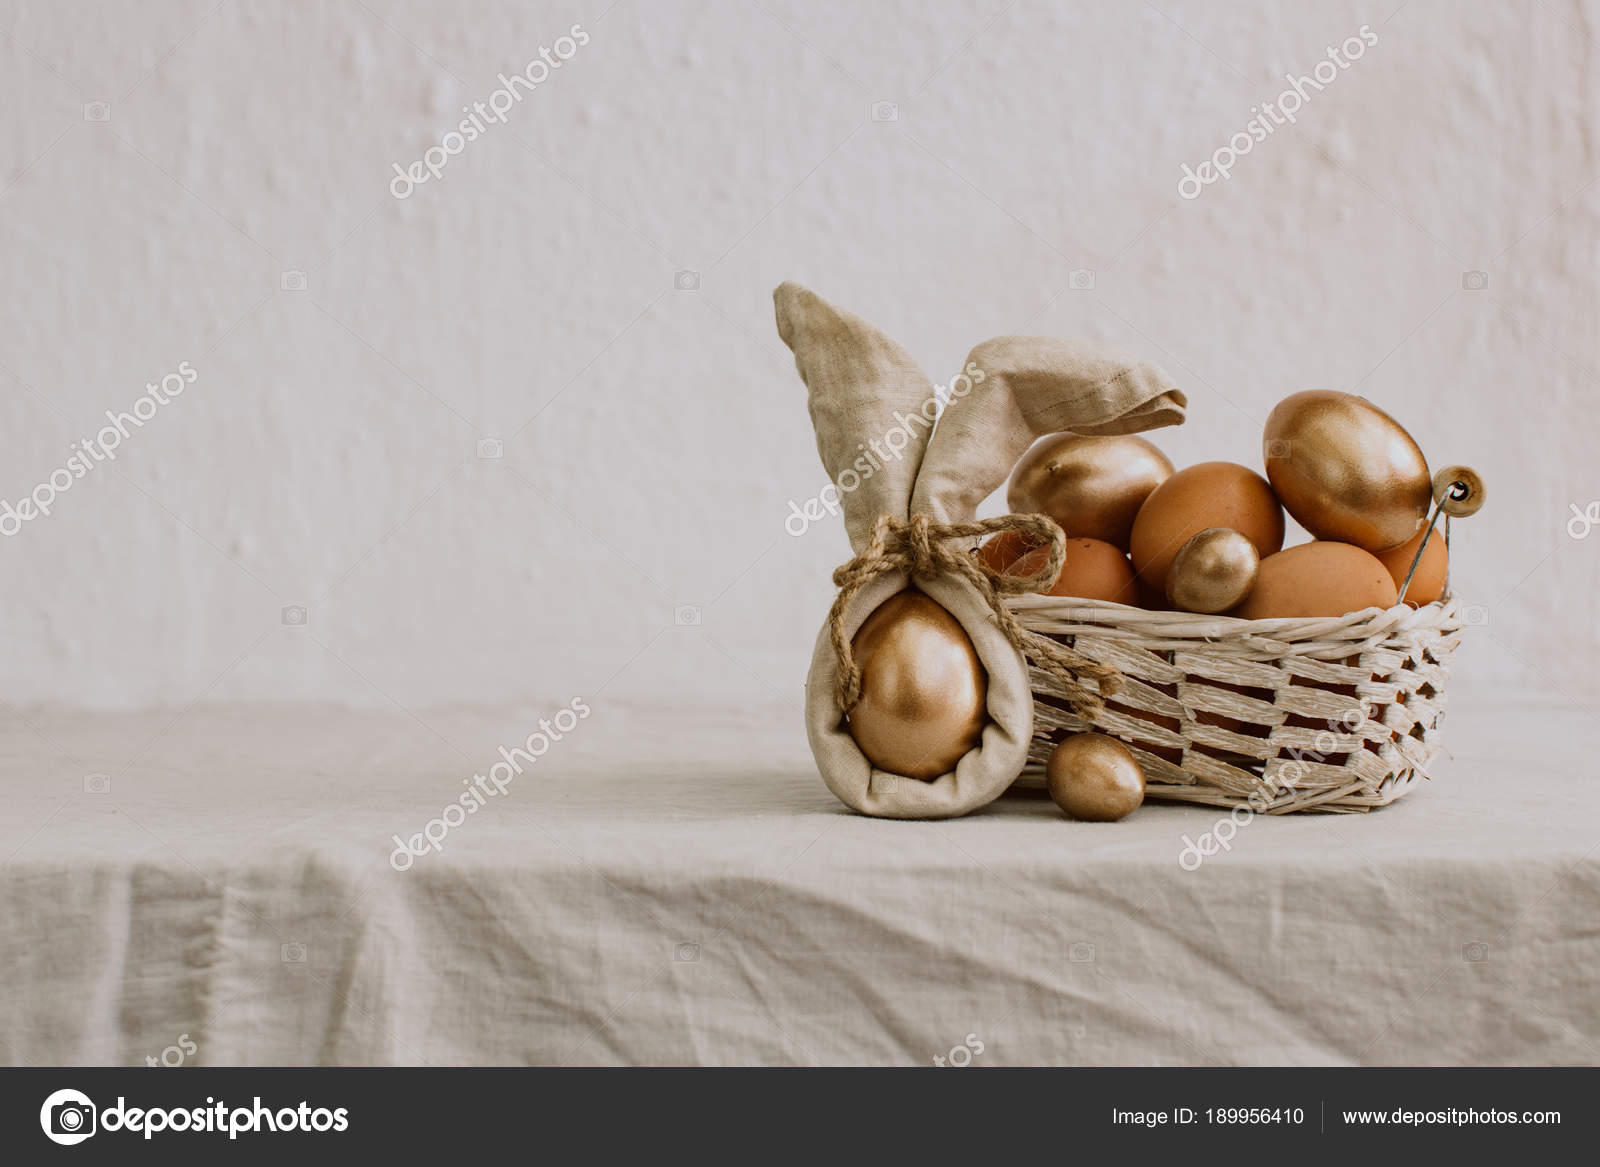 Rustic Happy Easter Funny Eggs Linen Napkin Rural Background Stock